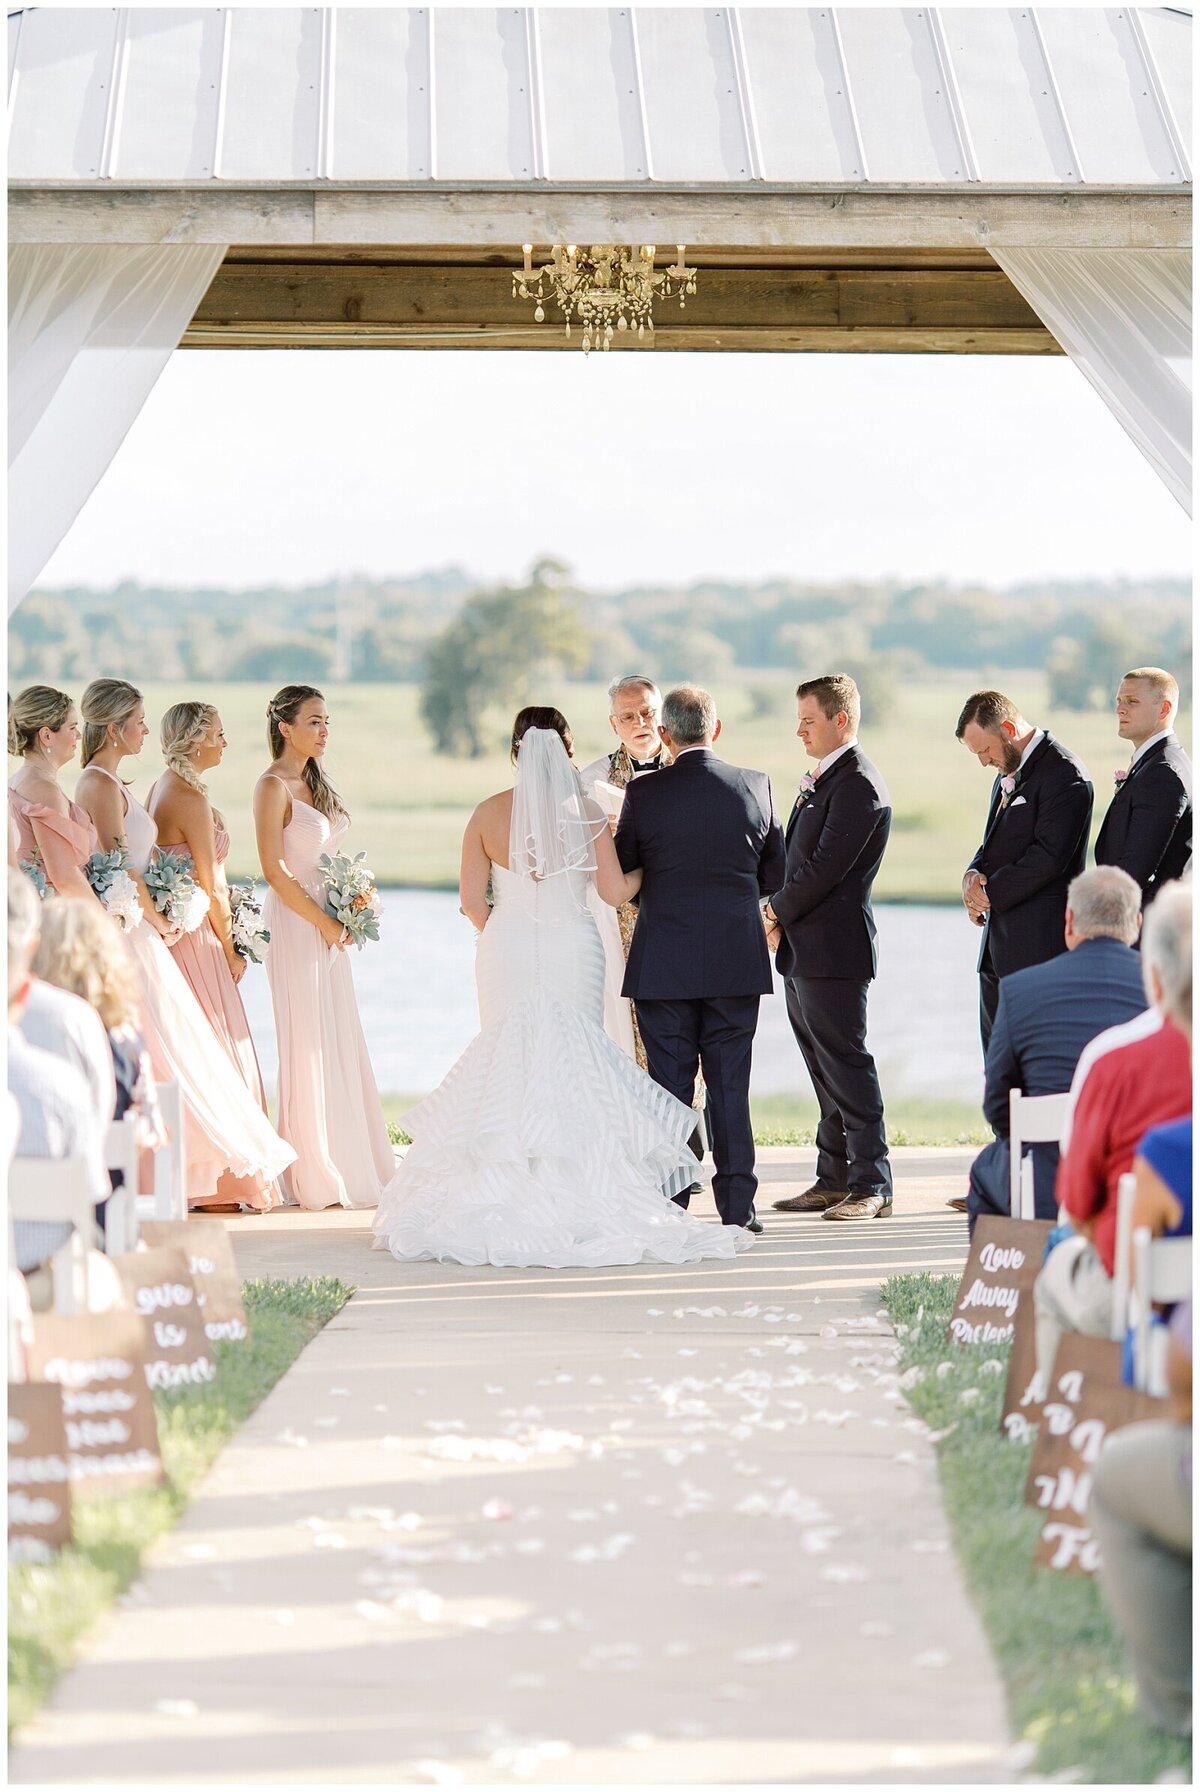 Vintage Blush Inspired Wedding at Emery's Buffalo Creek - Houston Wedding Venue_0096